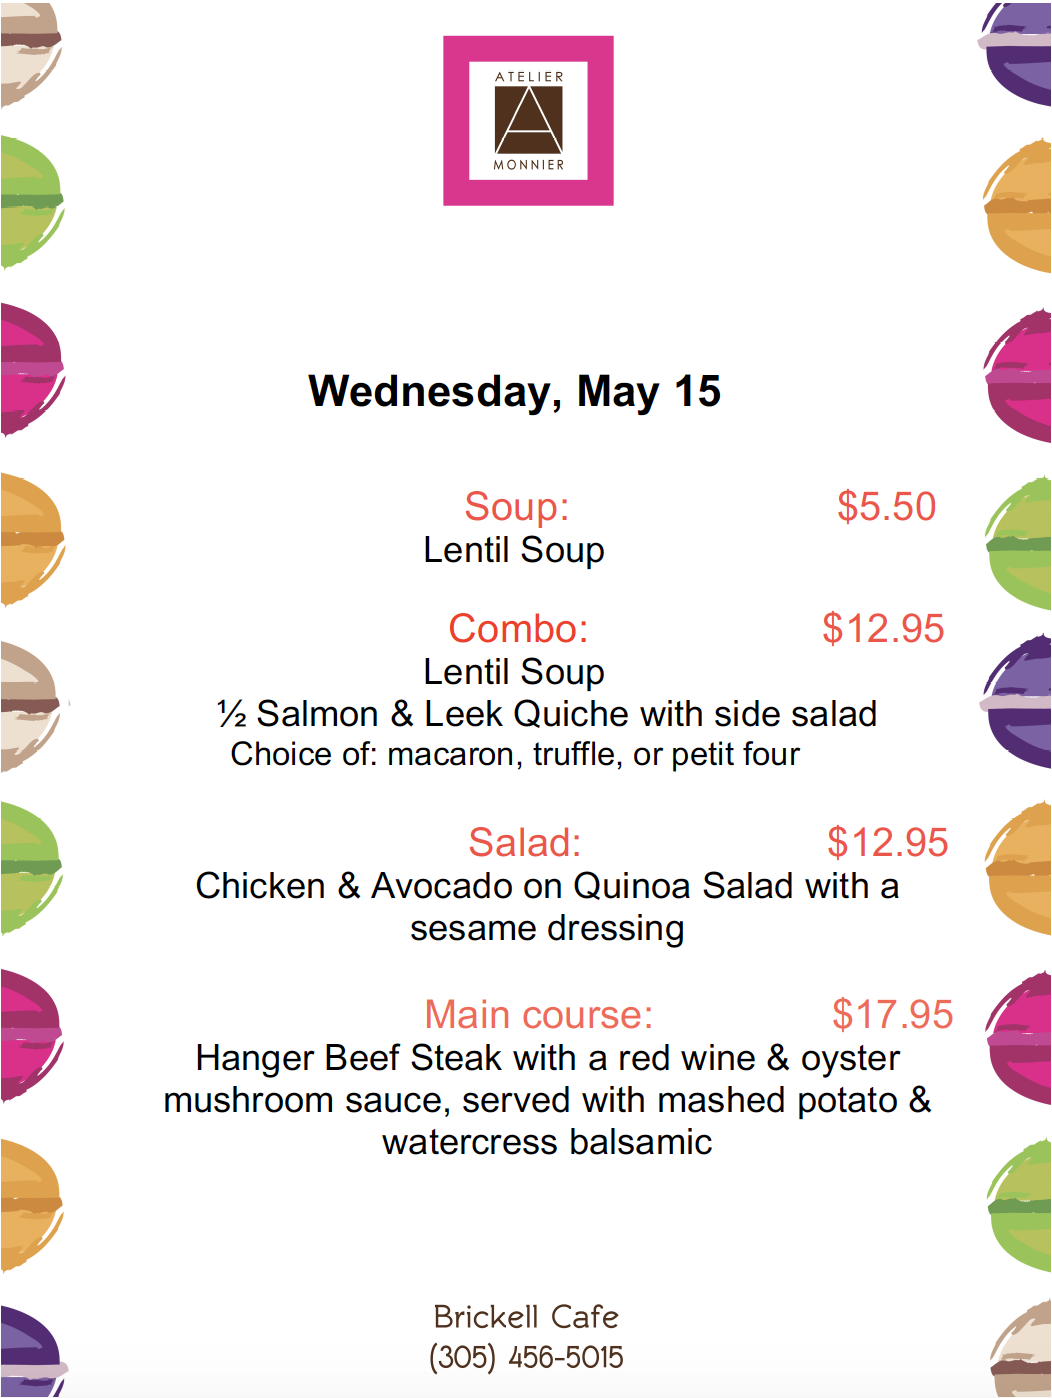 Atelier Monnier Brickell- Lunch Specials of the Week